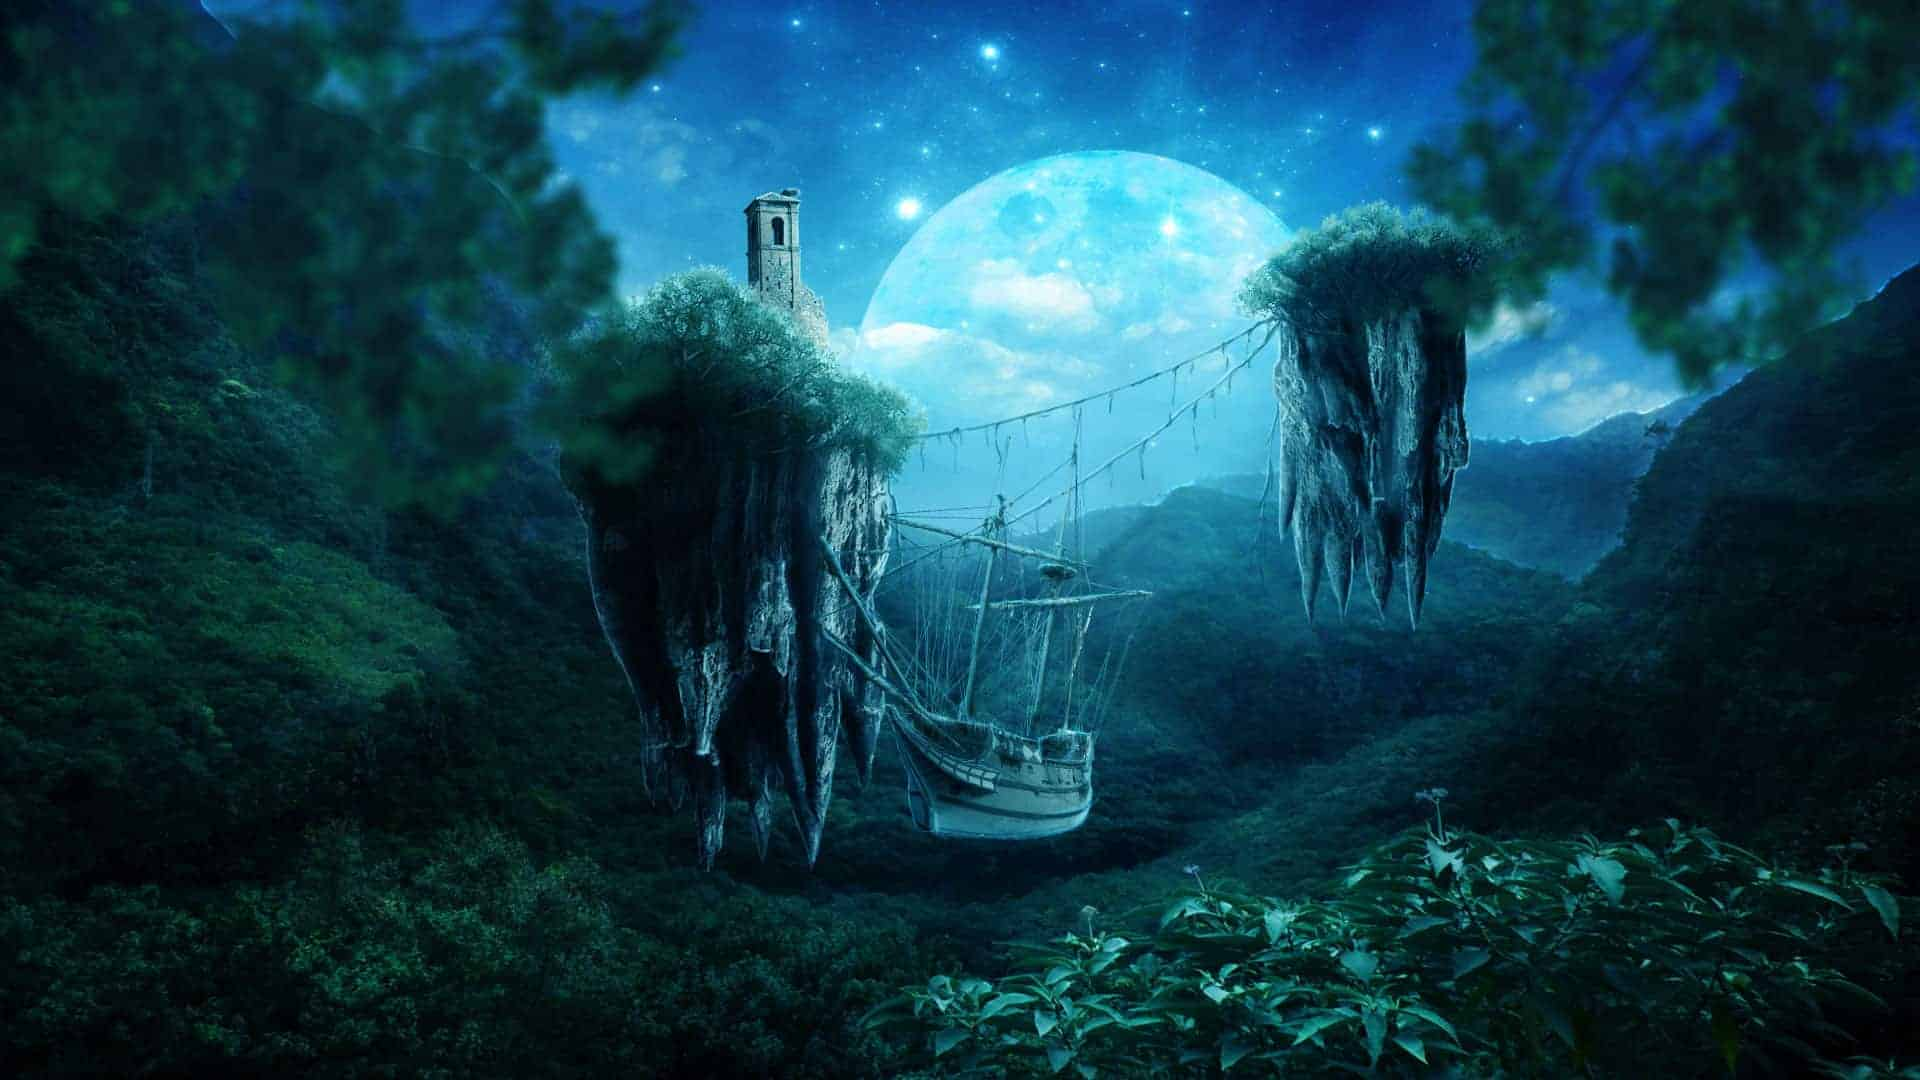 Create an Incredible Twilight Surreal Scene with Floating Islands